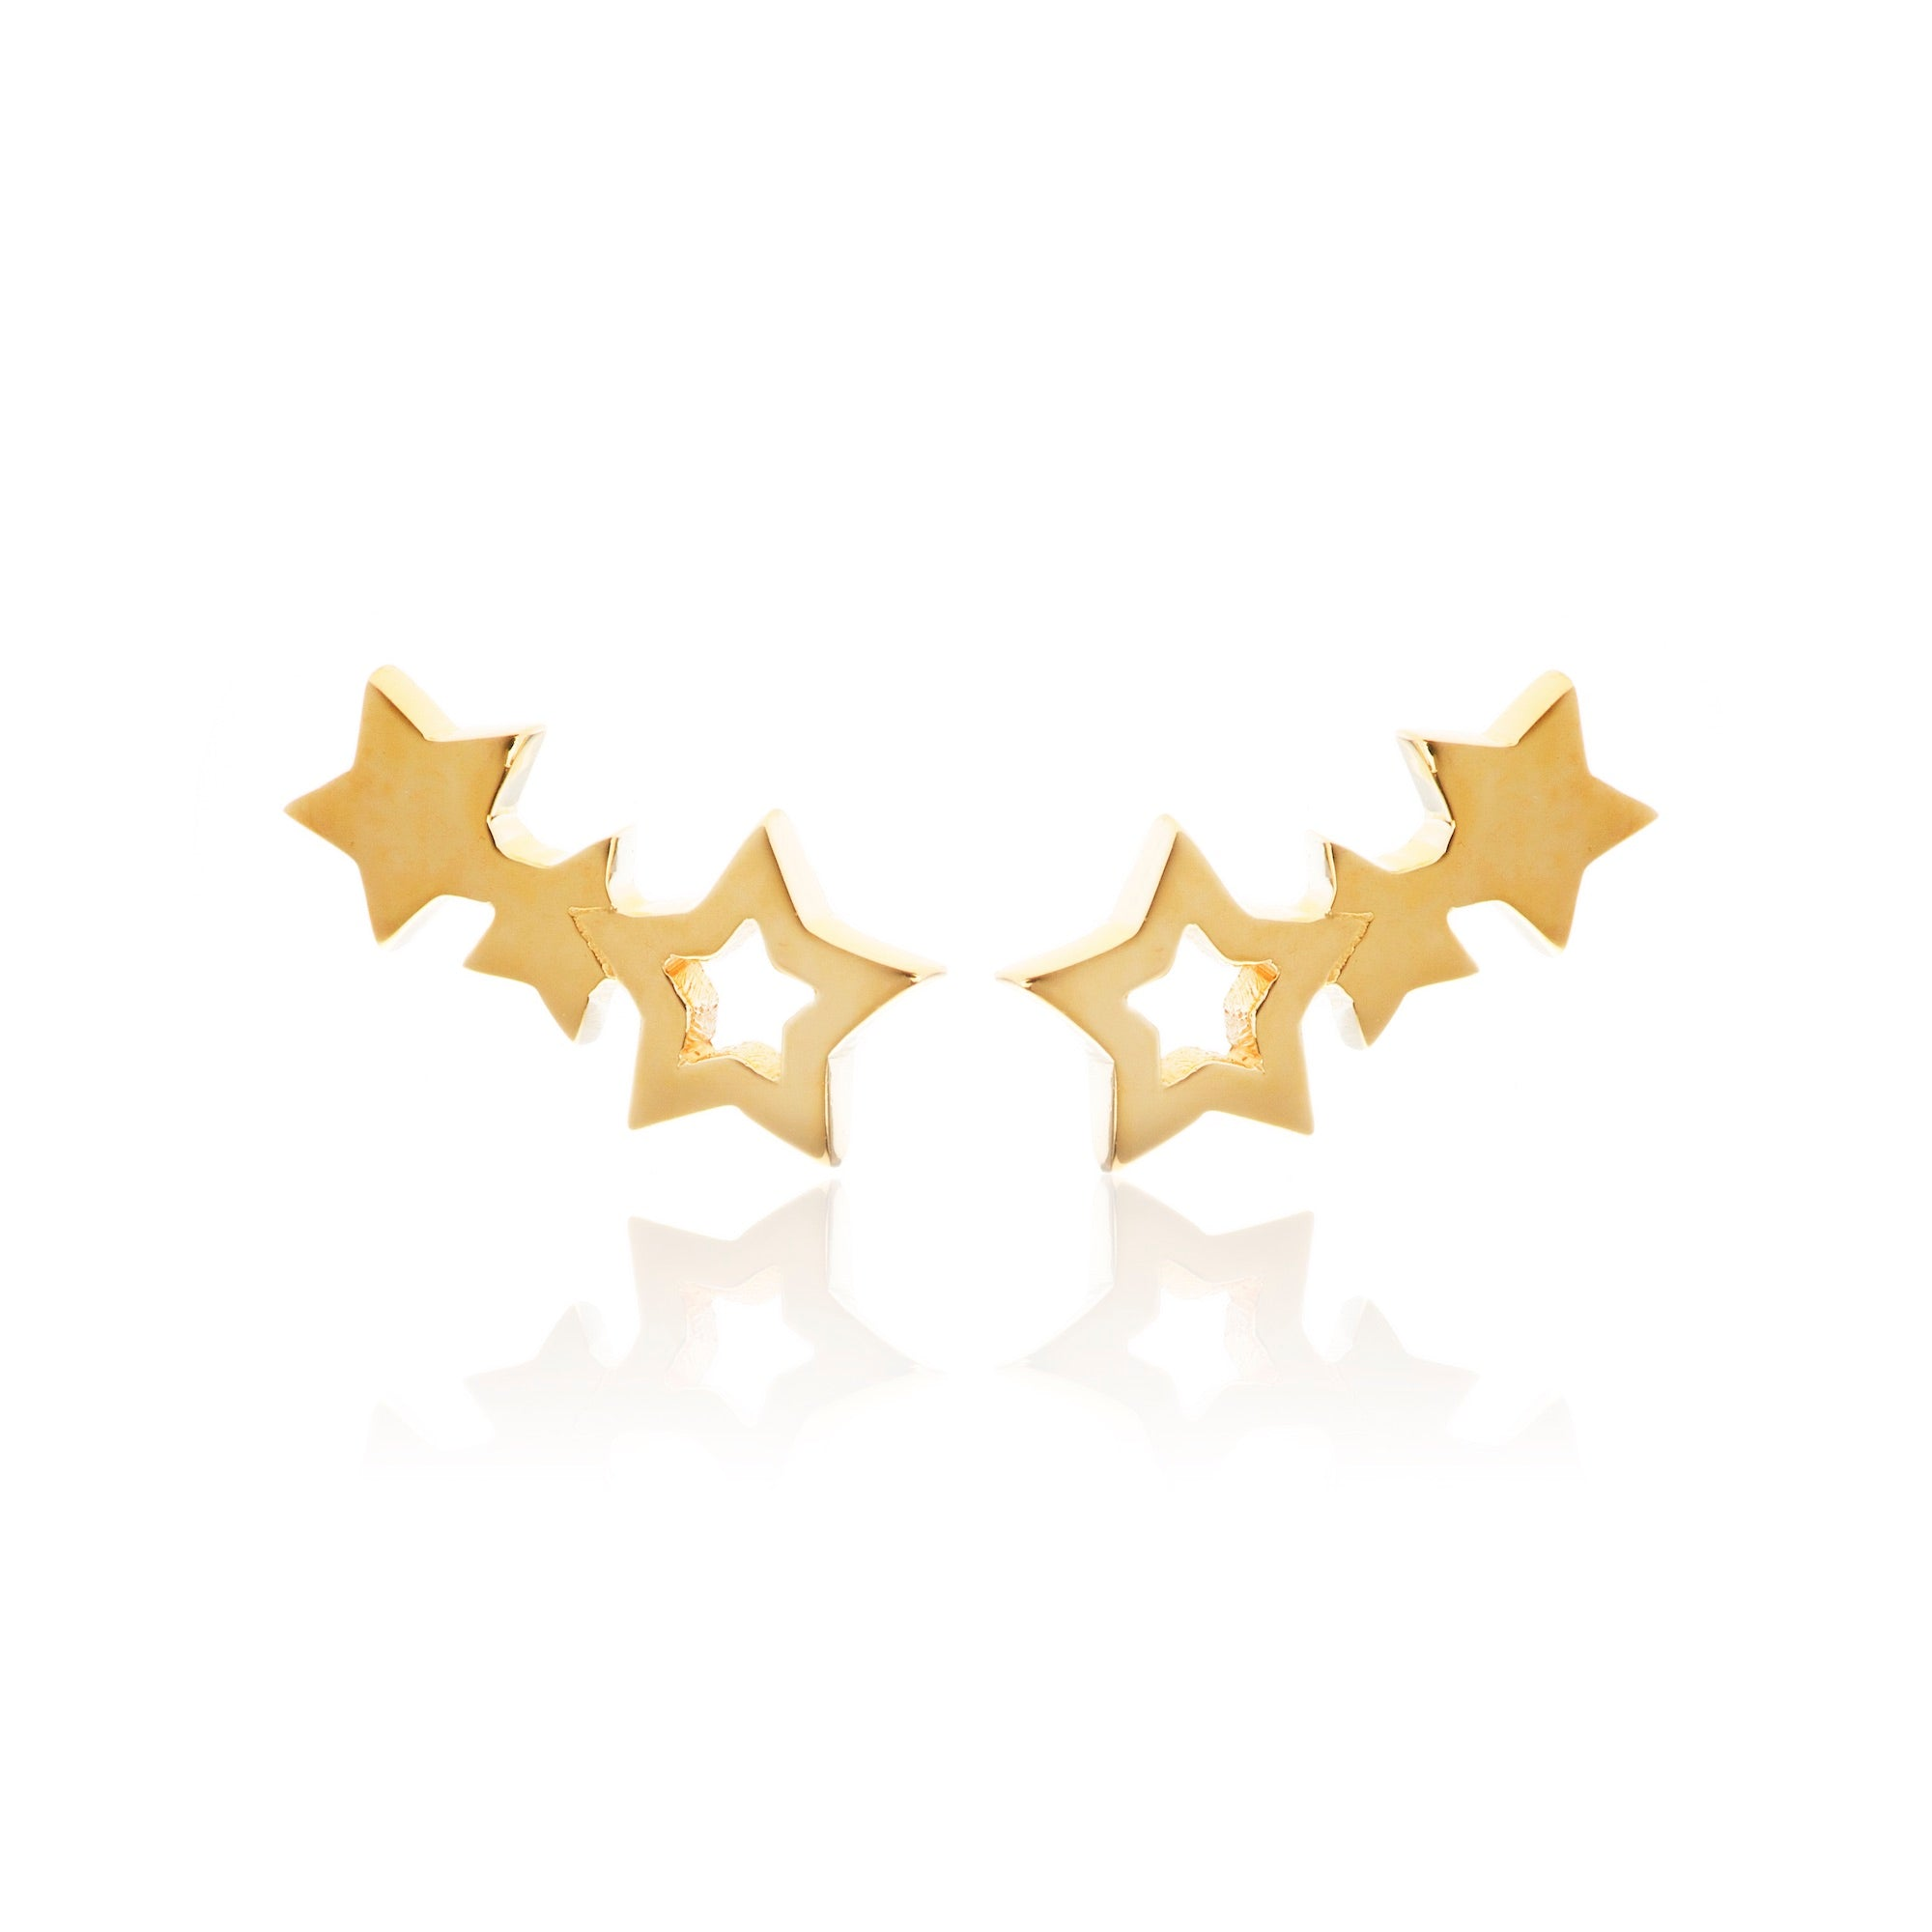 Silk & Steel Jewellery Superfine Star Climber Gold earrings